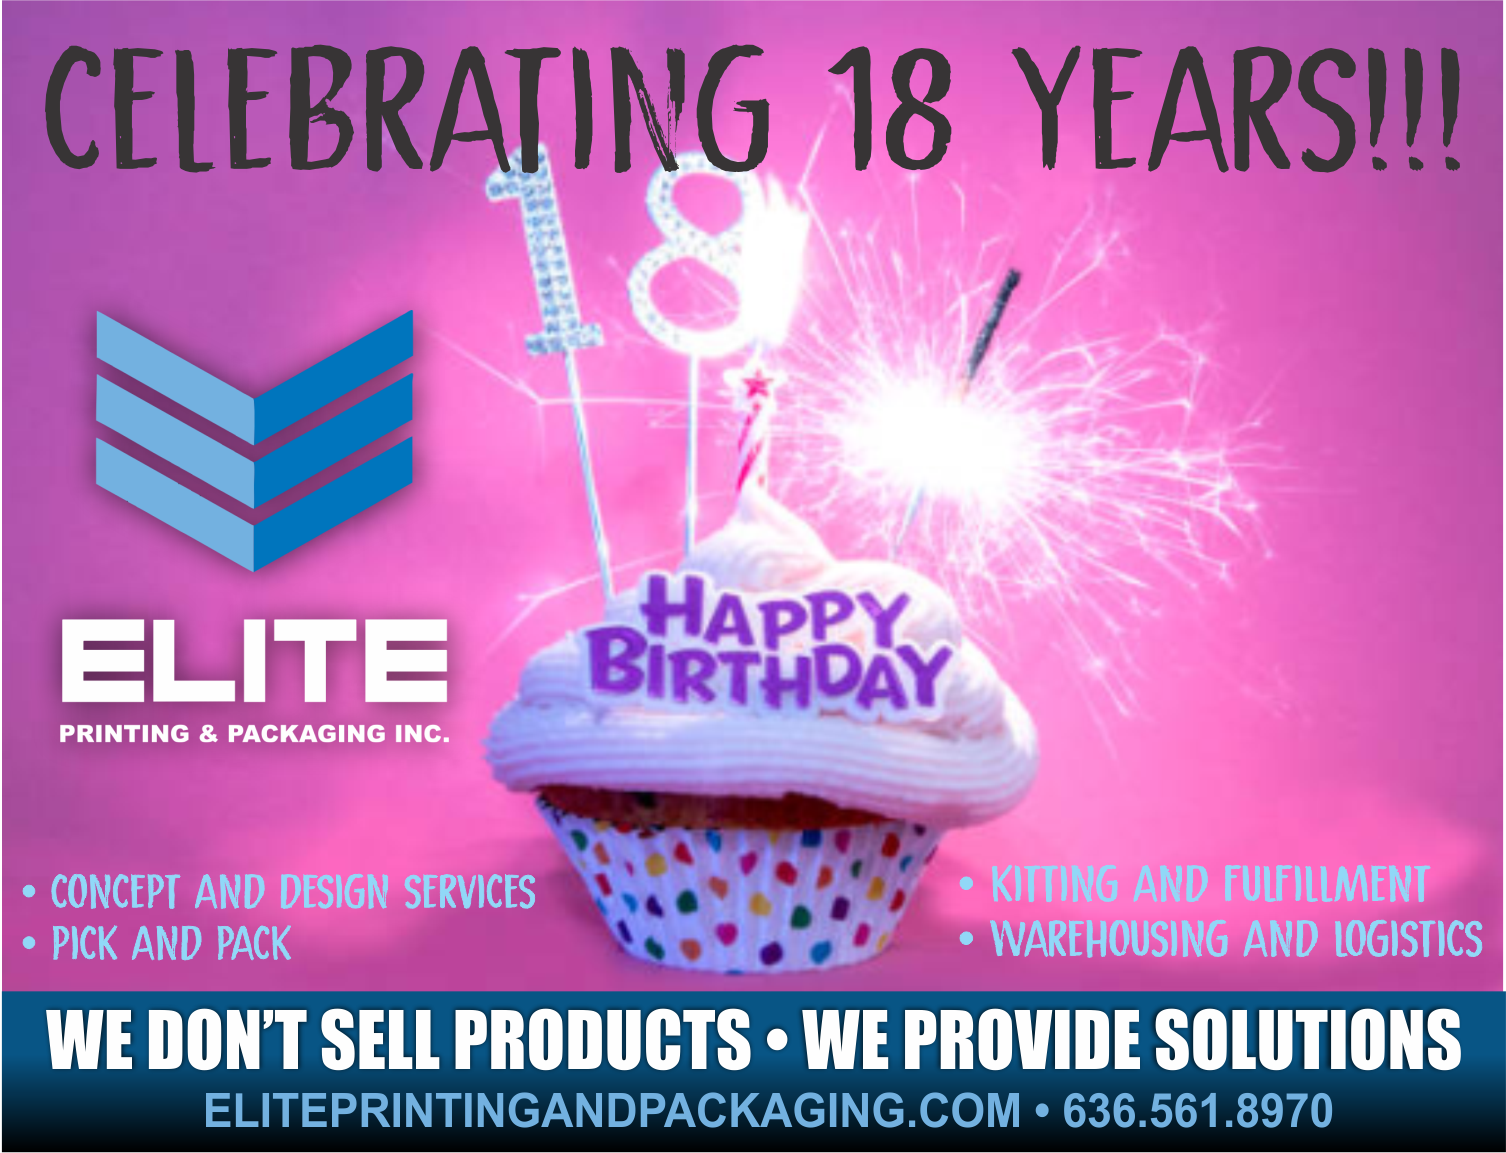 Happy Anniversary Elite!!